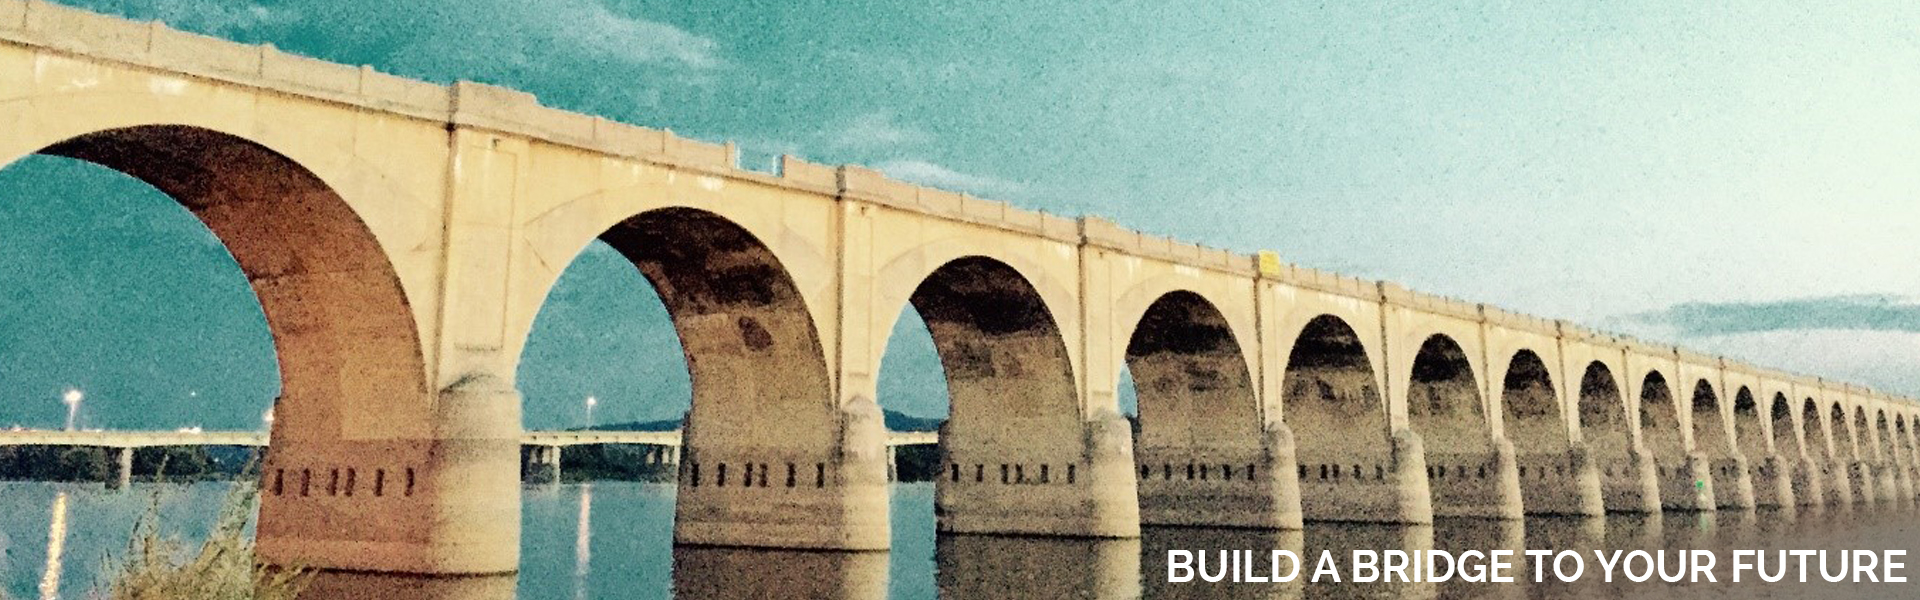 Build a Bridge to Your Future with Connie Milligan LCSW and Life Coach - Lexington KY